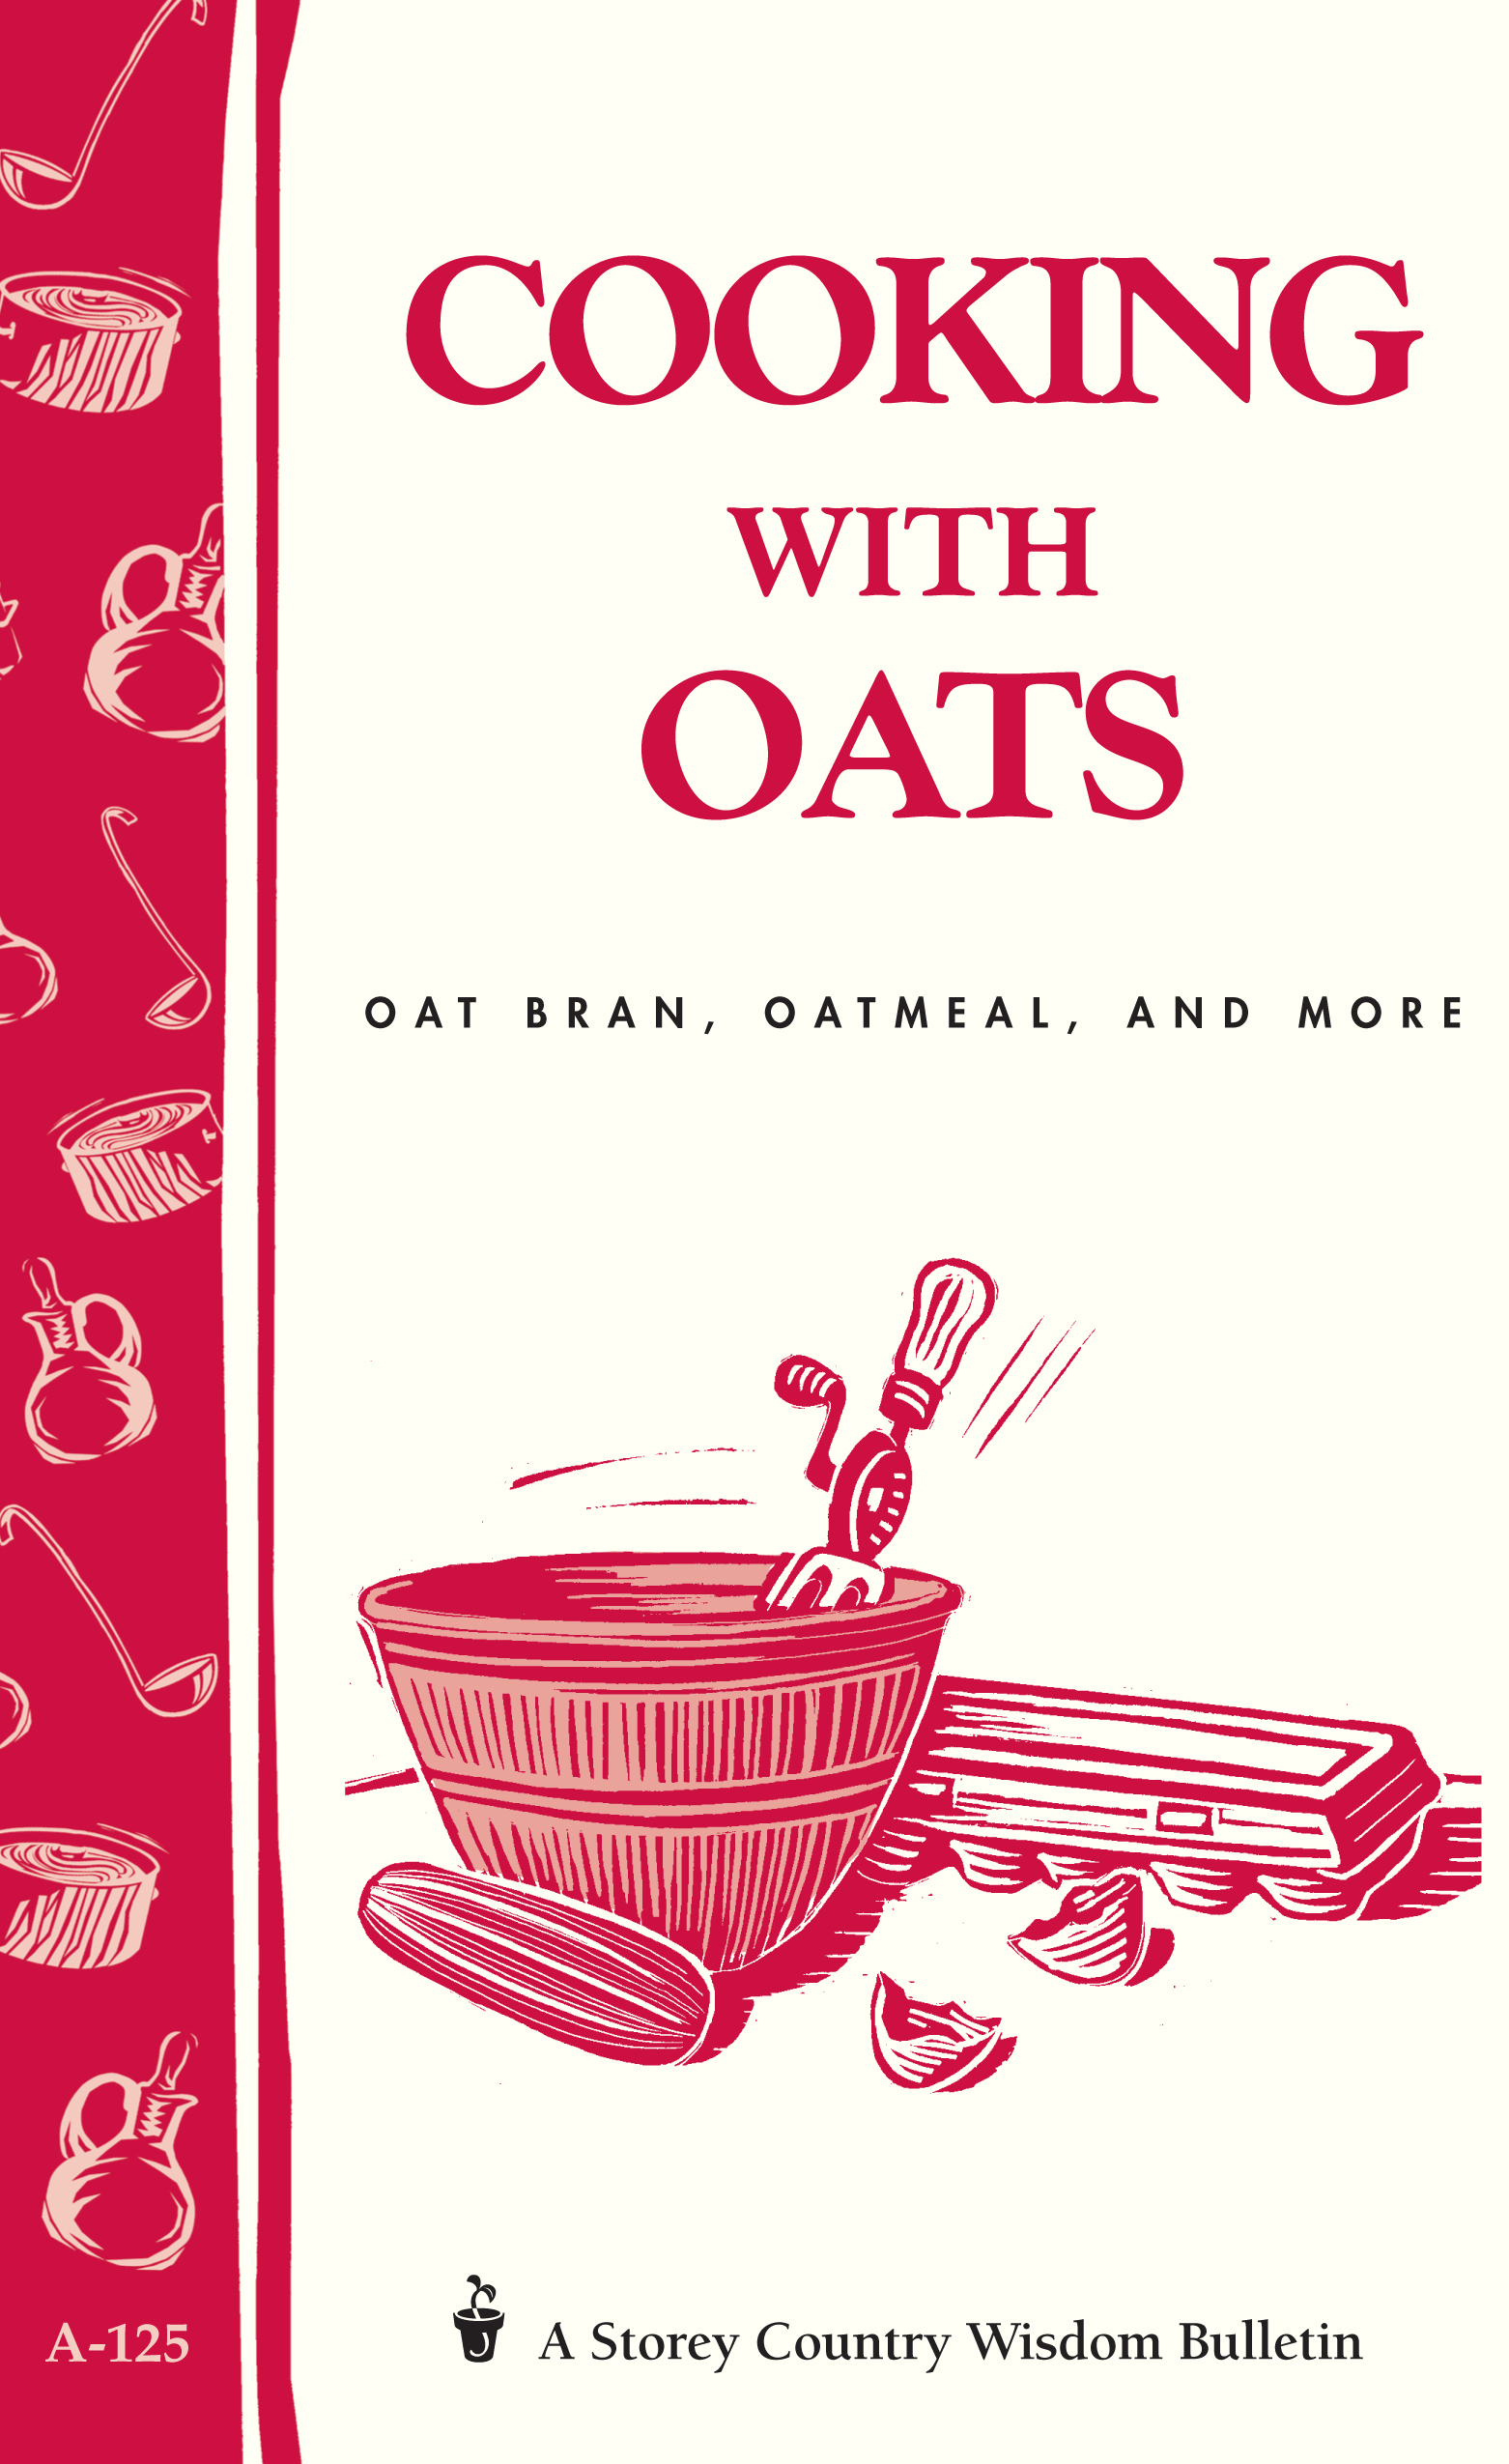 Cooking with Oats Oat Bran, Oatmeal, and More / Storey Country Wisdom Bulletin  A-125 - Cornelia M. Parkinson